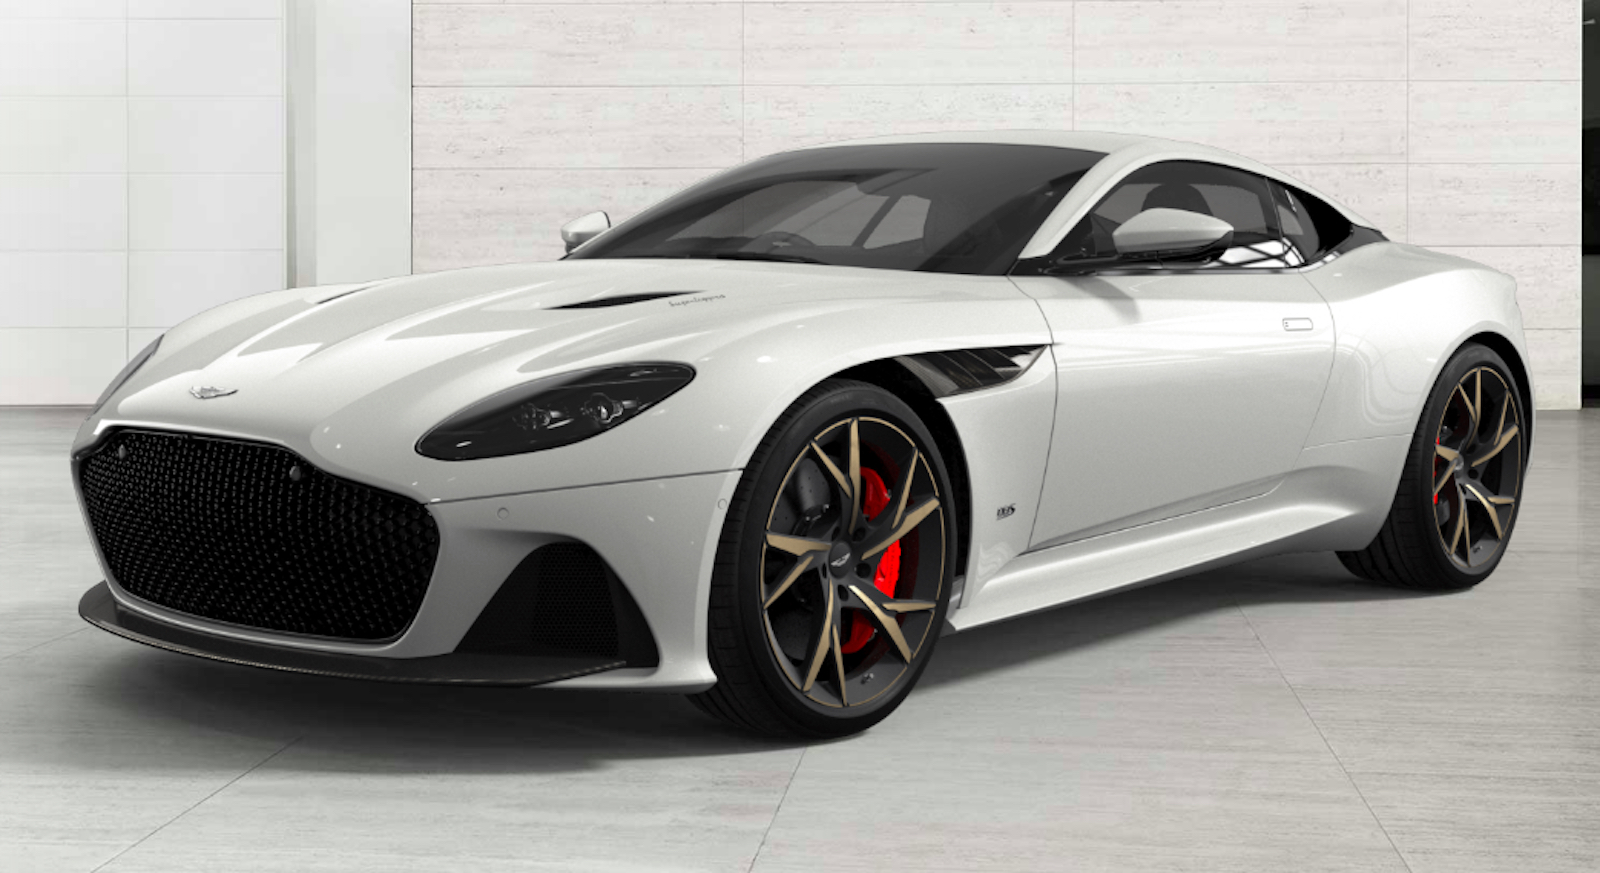 Luxury Cars 2019: 10 New Exotic Cars Coming In 2019